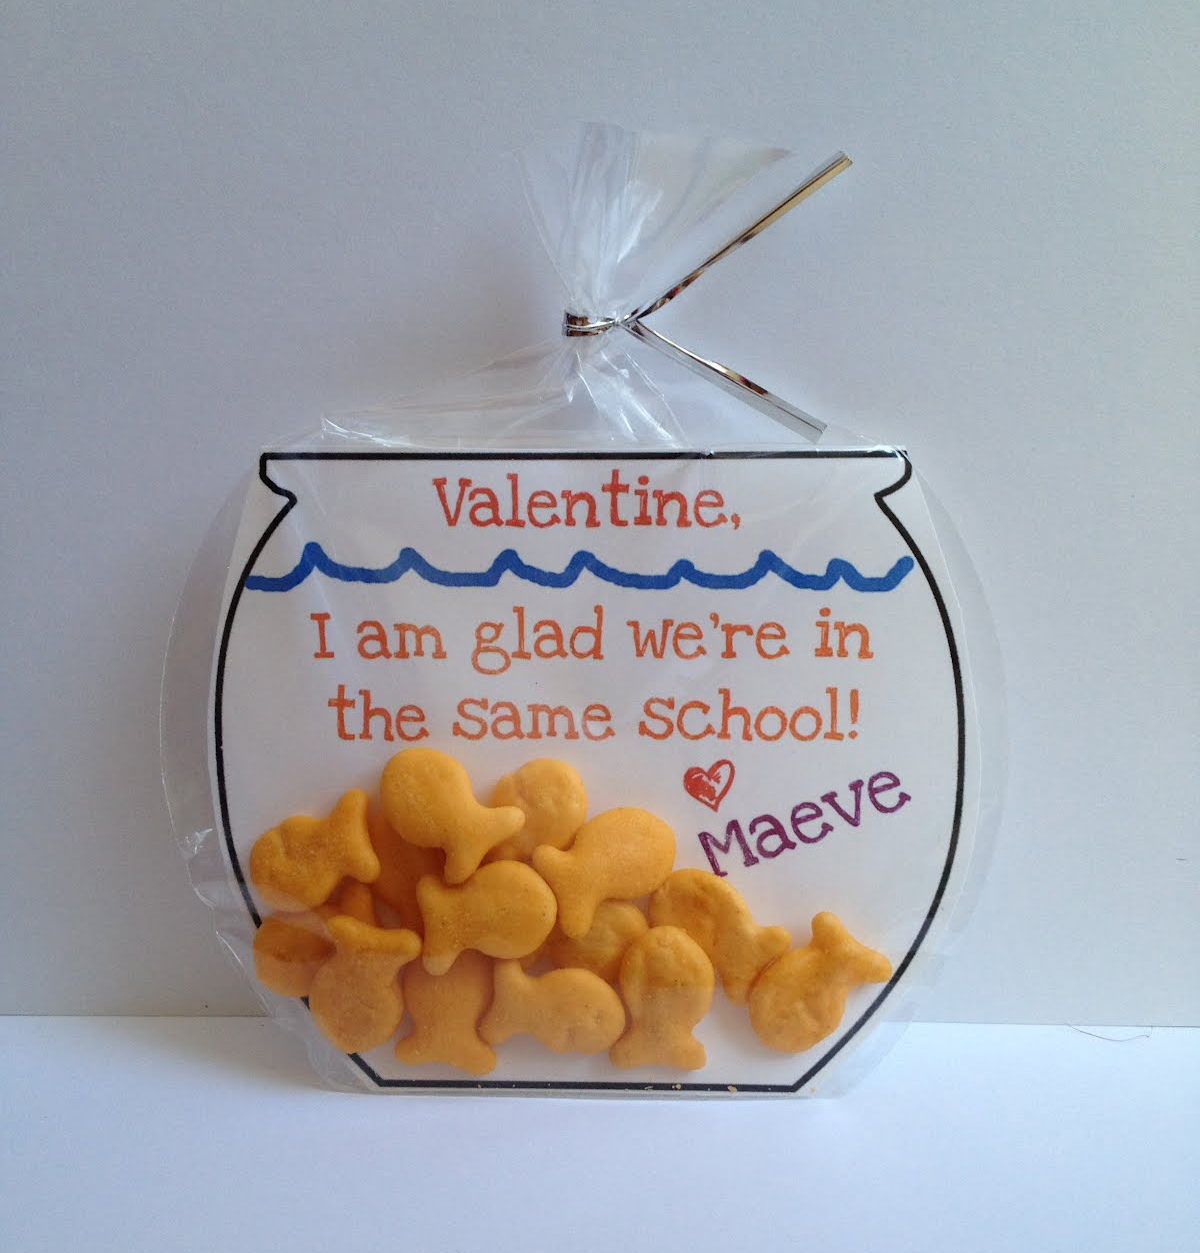 Cute fish school quotes quotesgram for Valentines day cute ideas